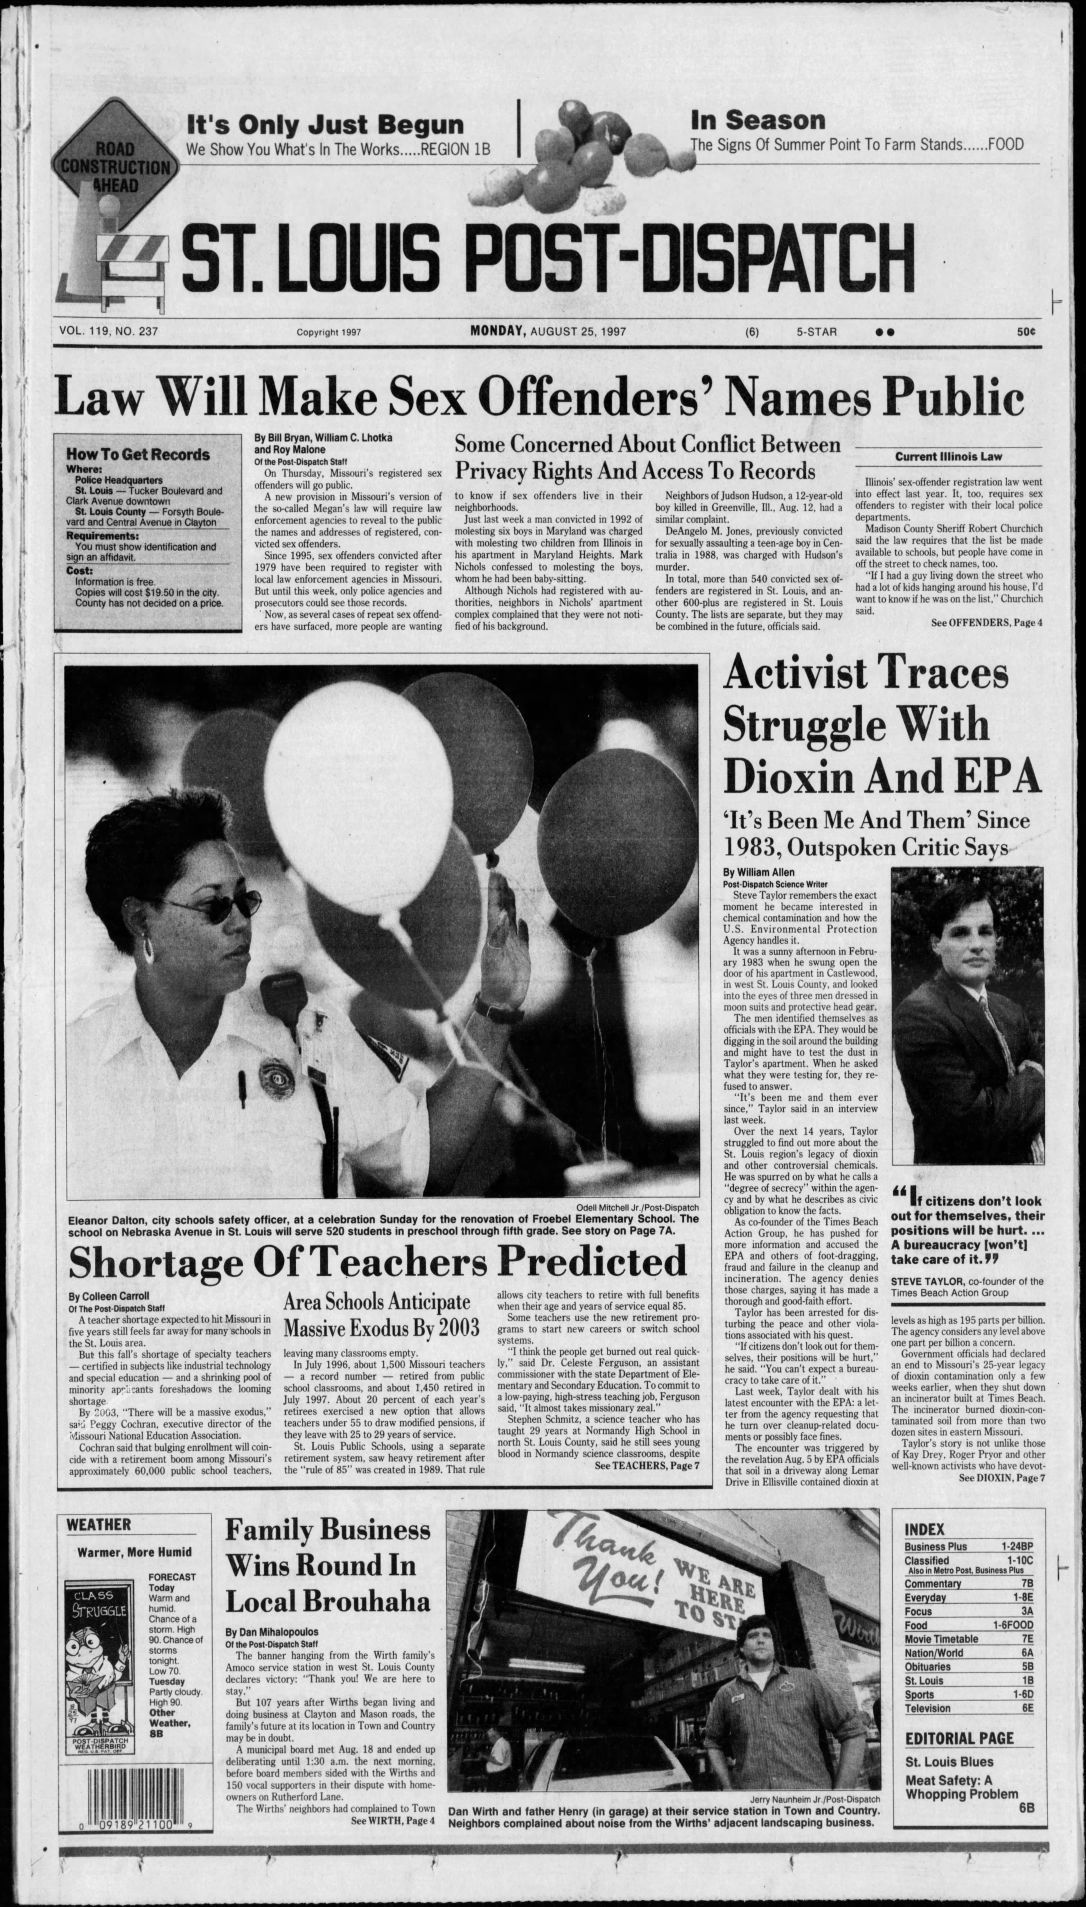 Aug  25 Post-Dispatch page 1: The stories of the day from decades